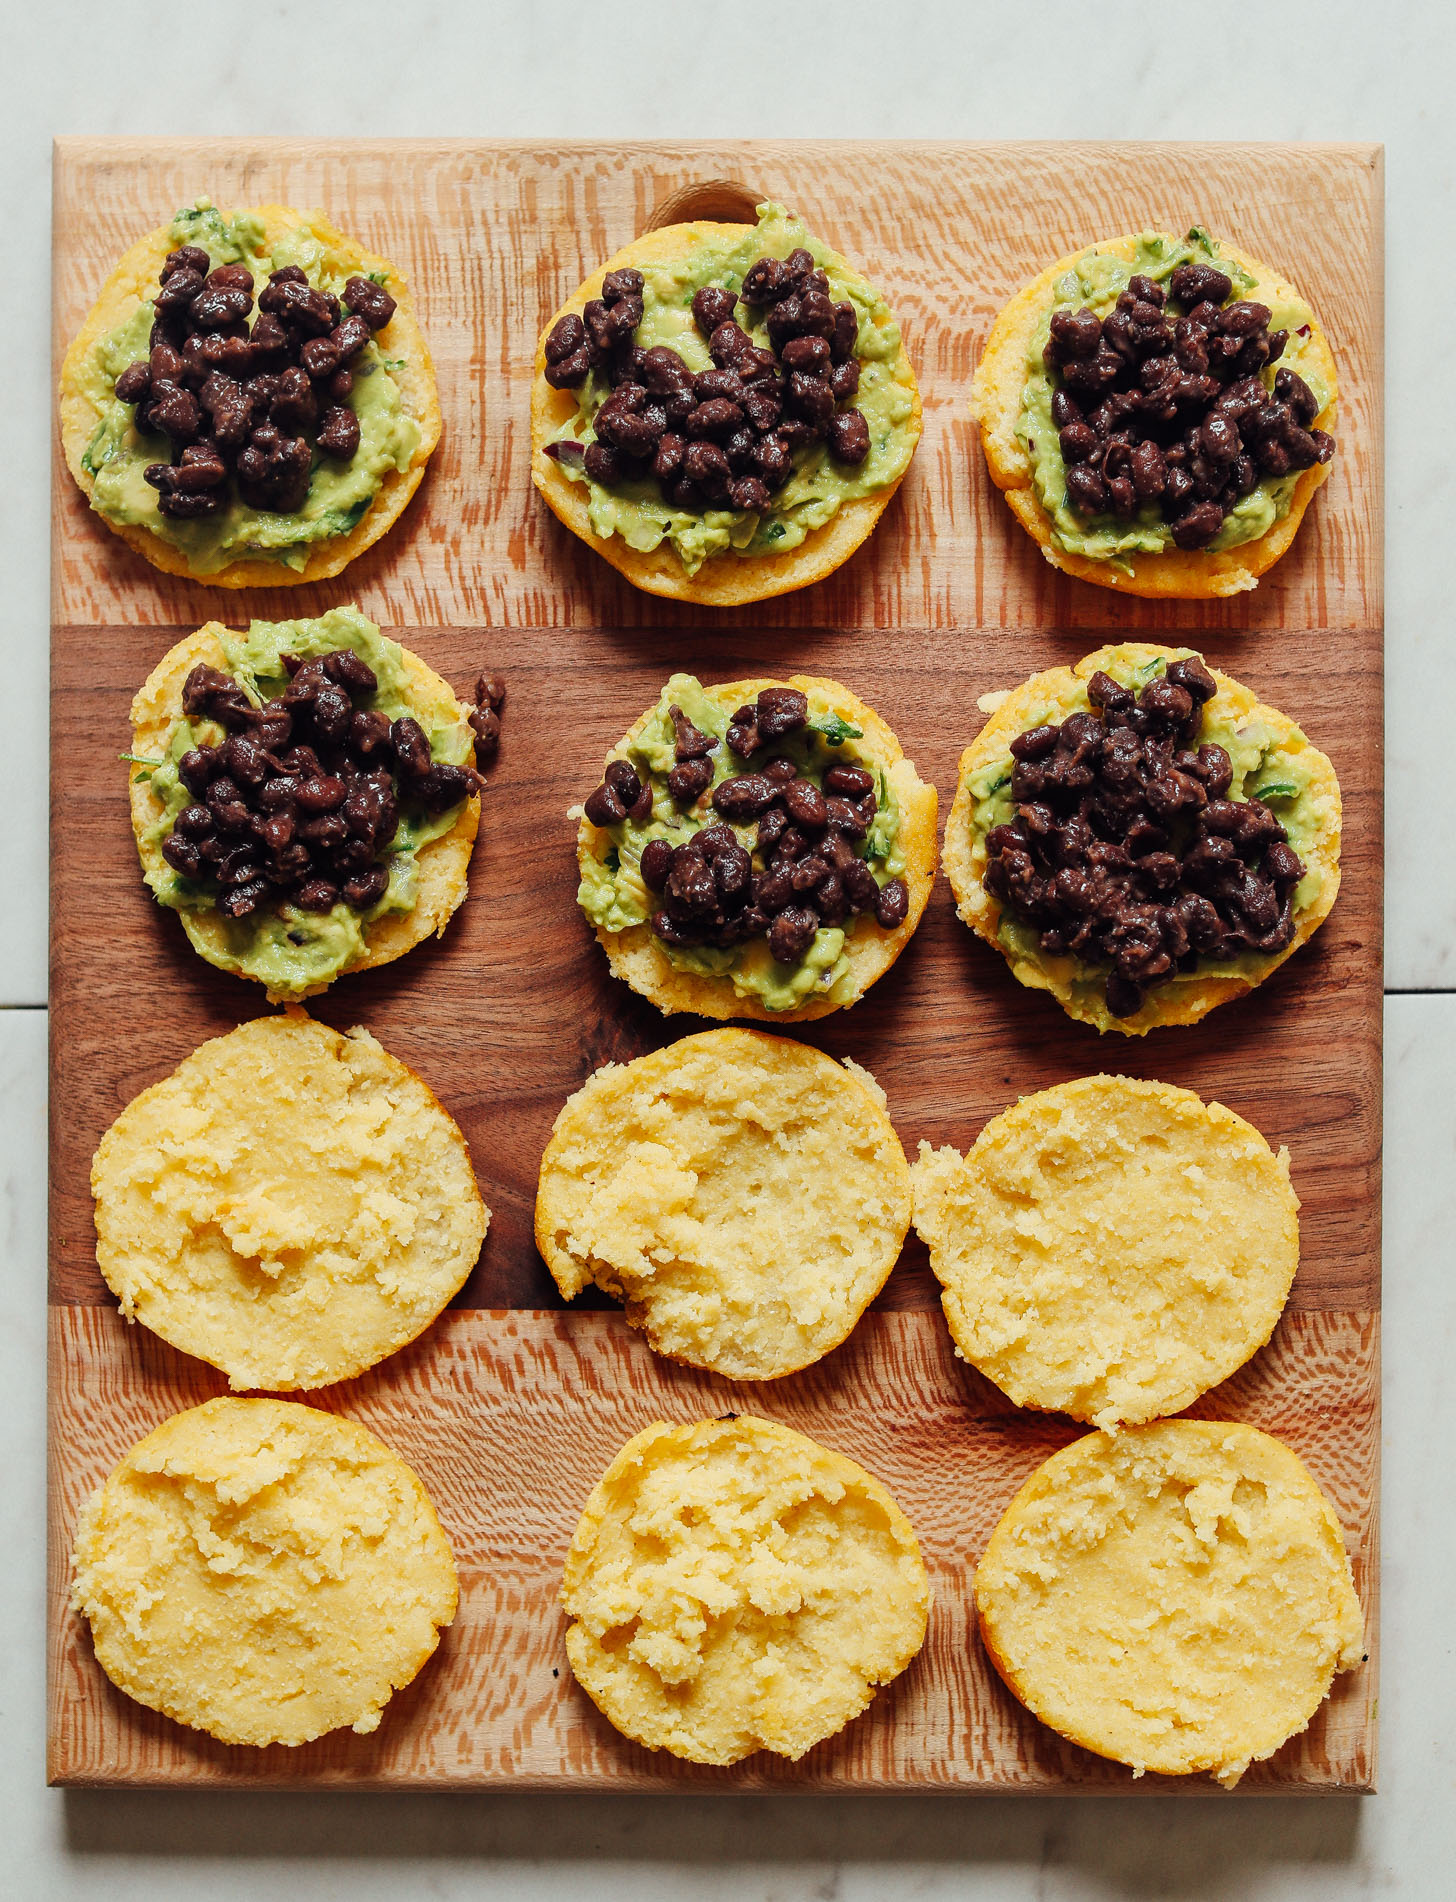 Wood cutting board with open-faced Arepa Sandwiches topped with guacamole and black beans